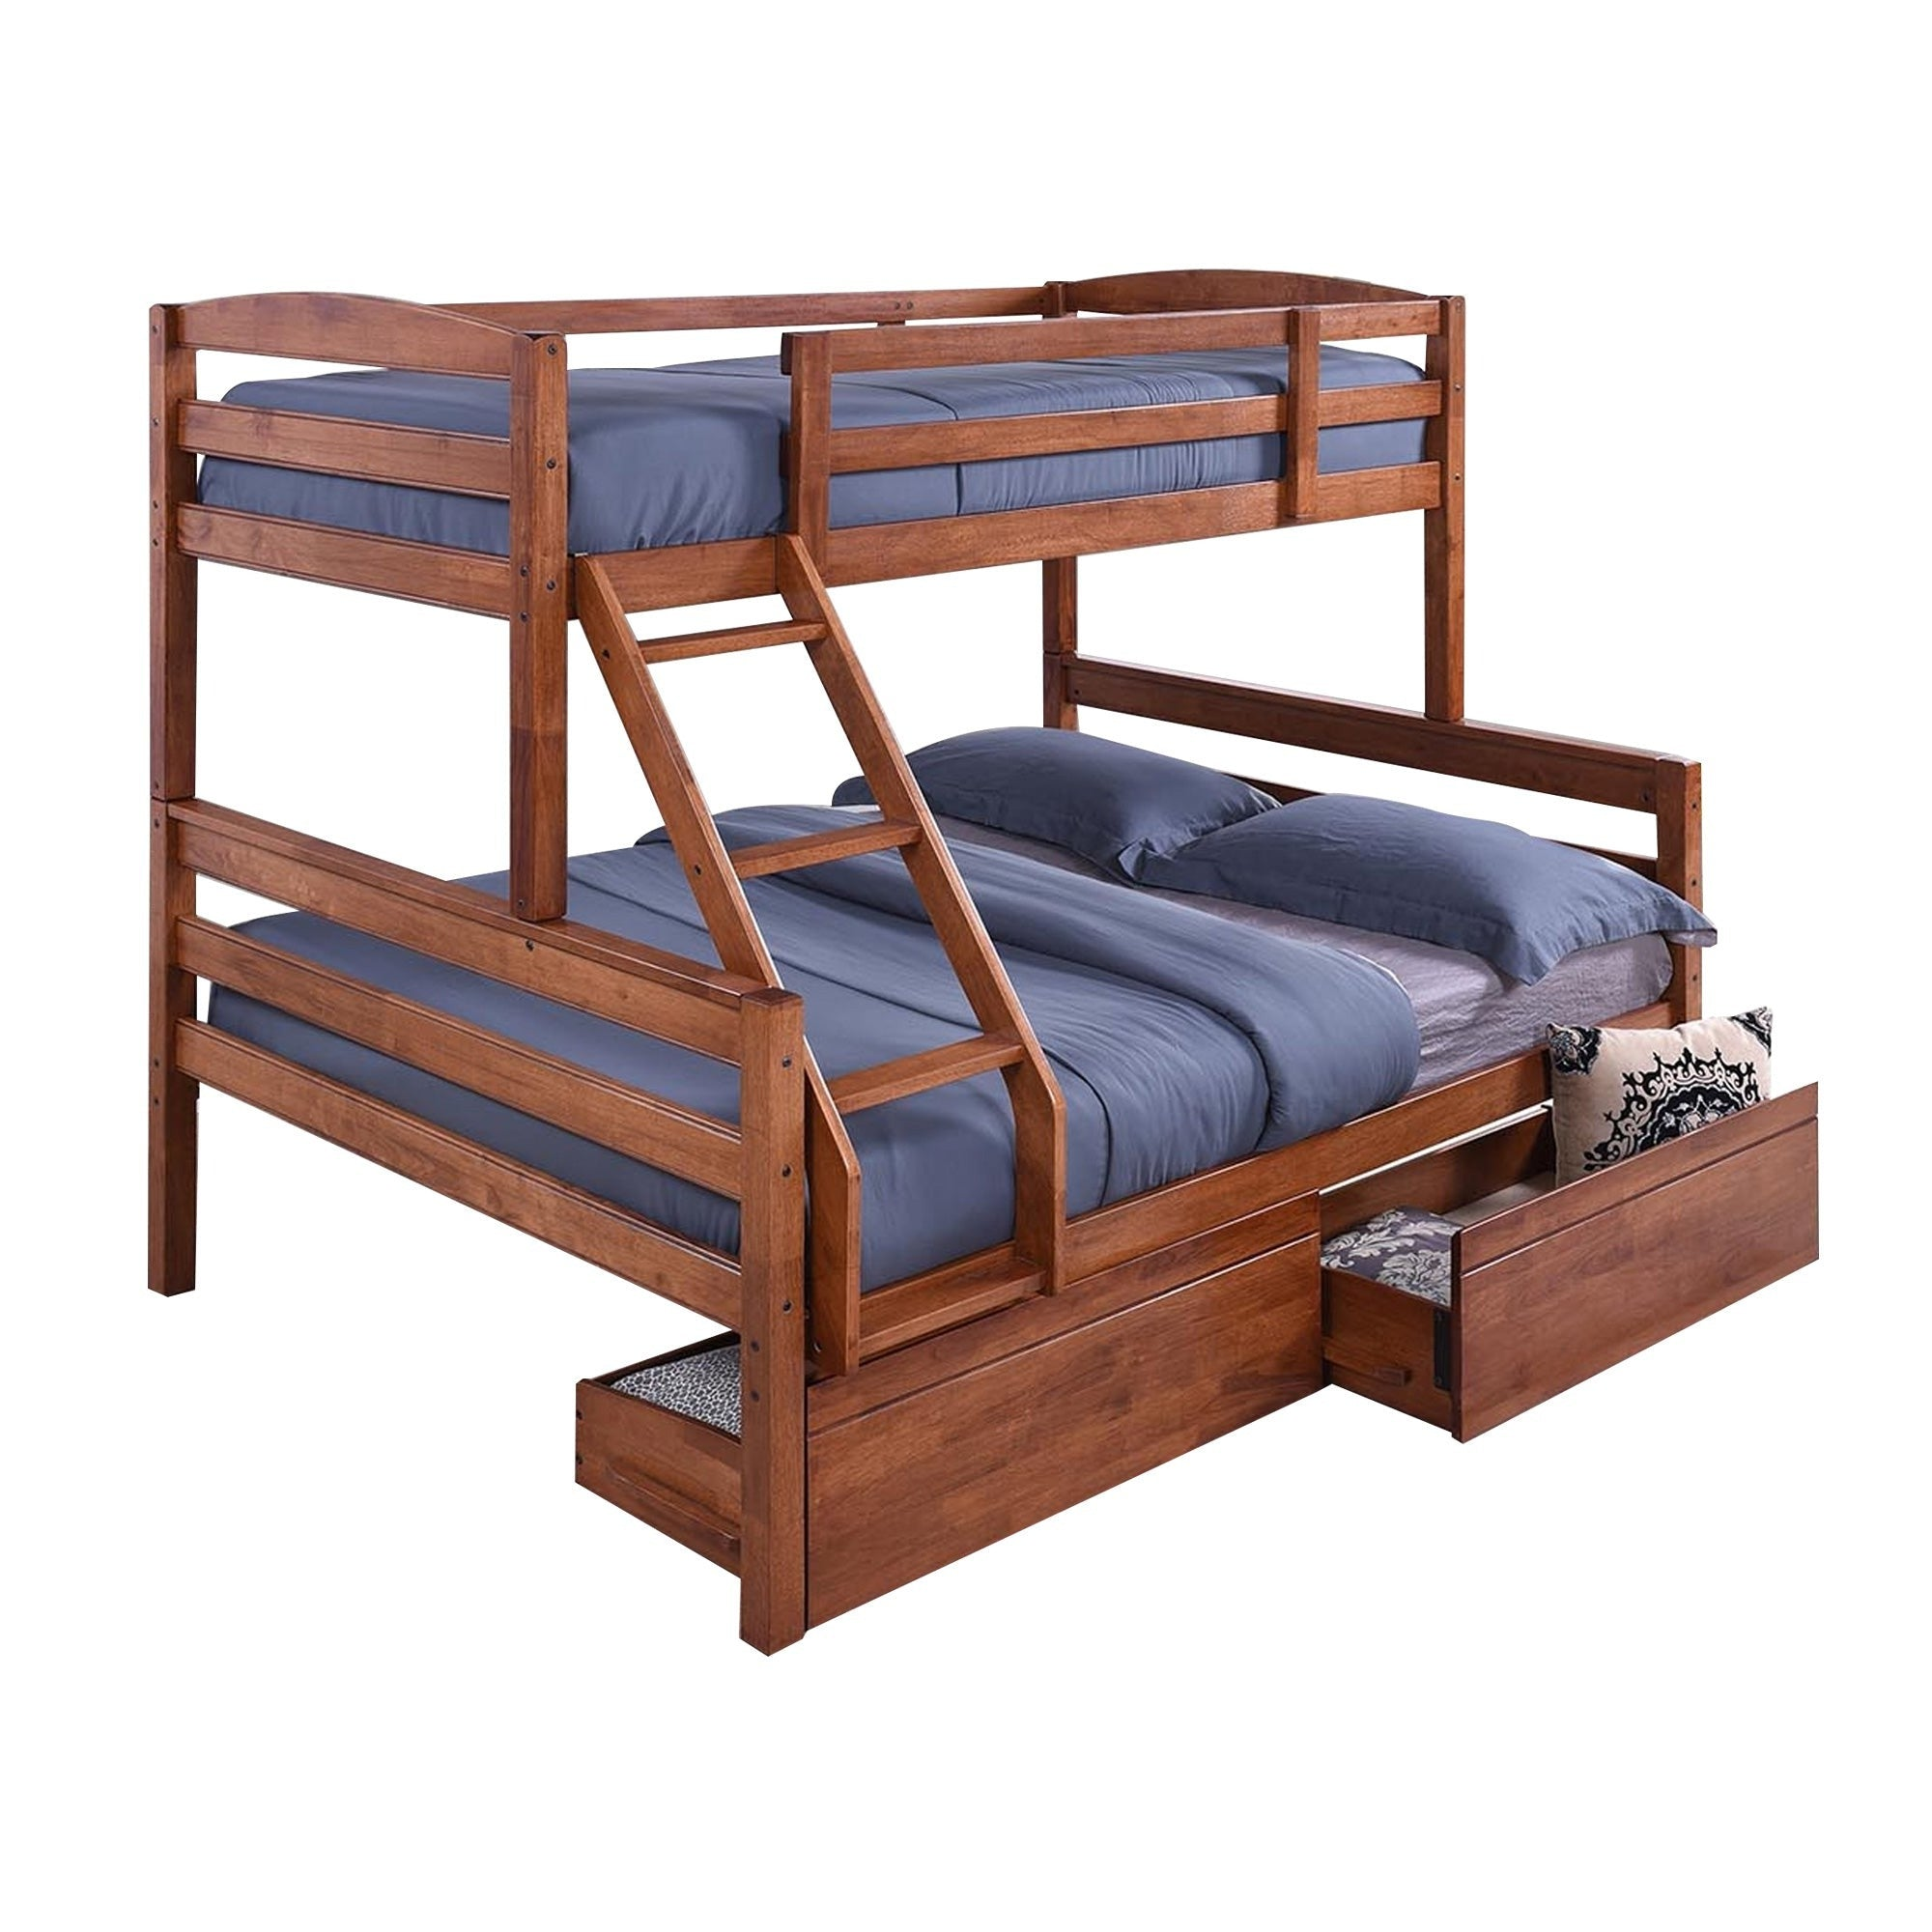 Charlie Duo Bunk Bed Frame Single Double The Furniture Store